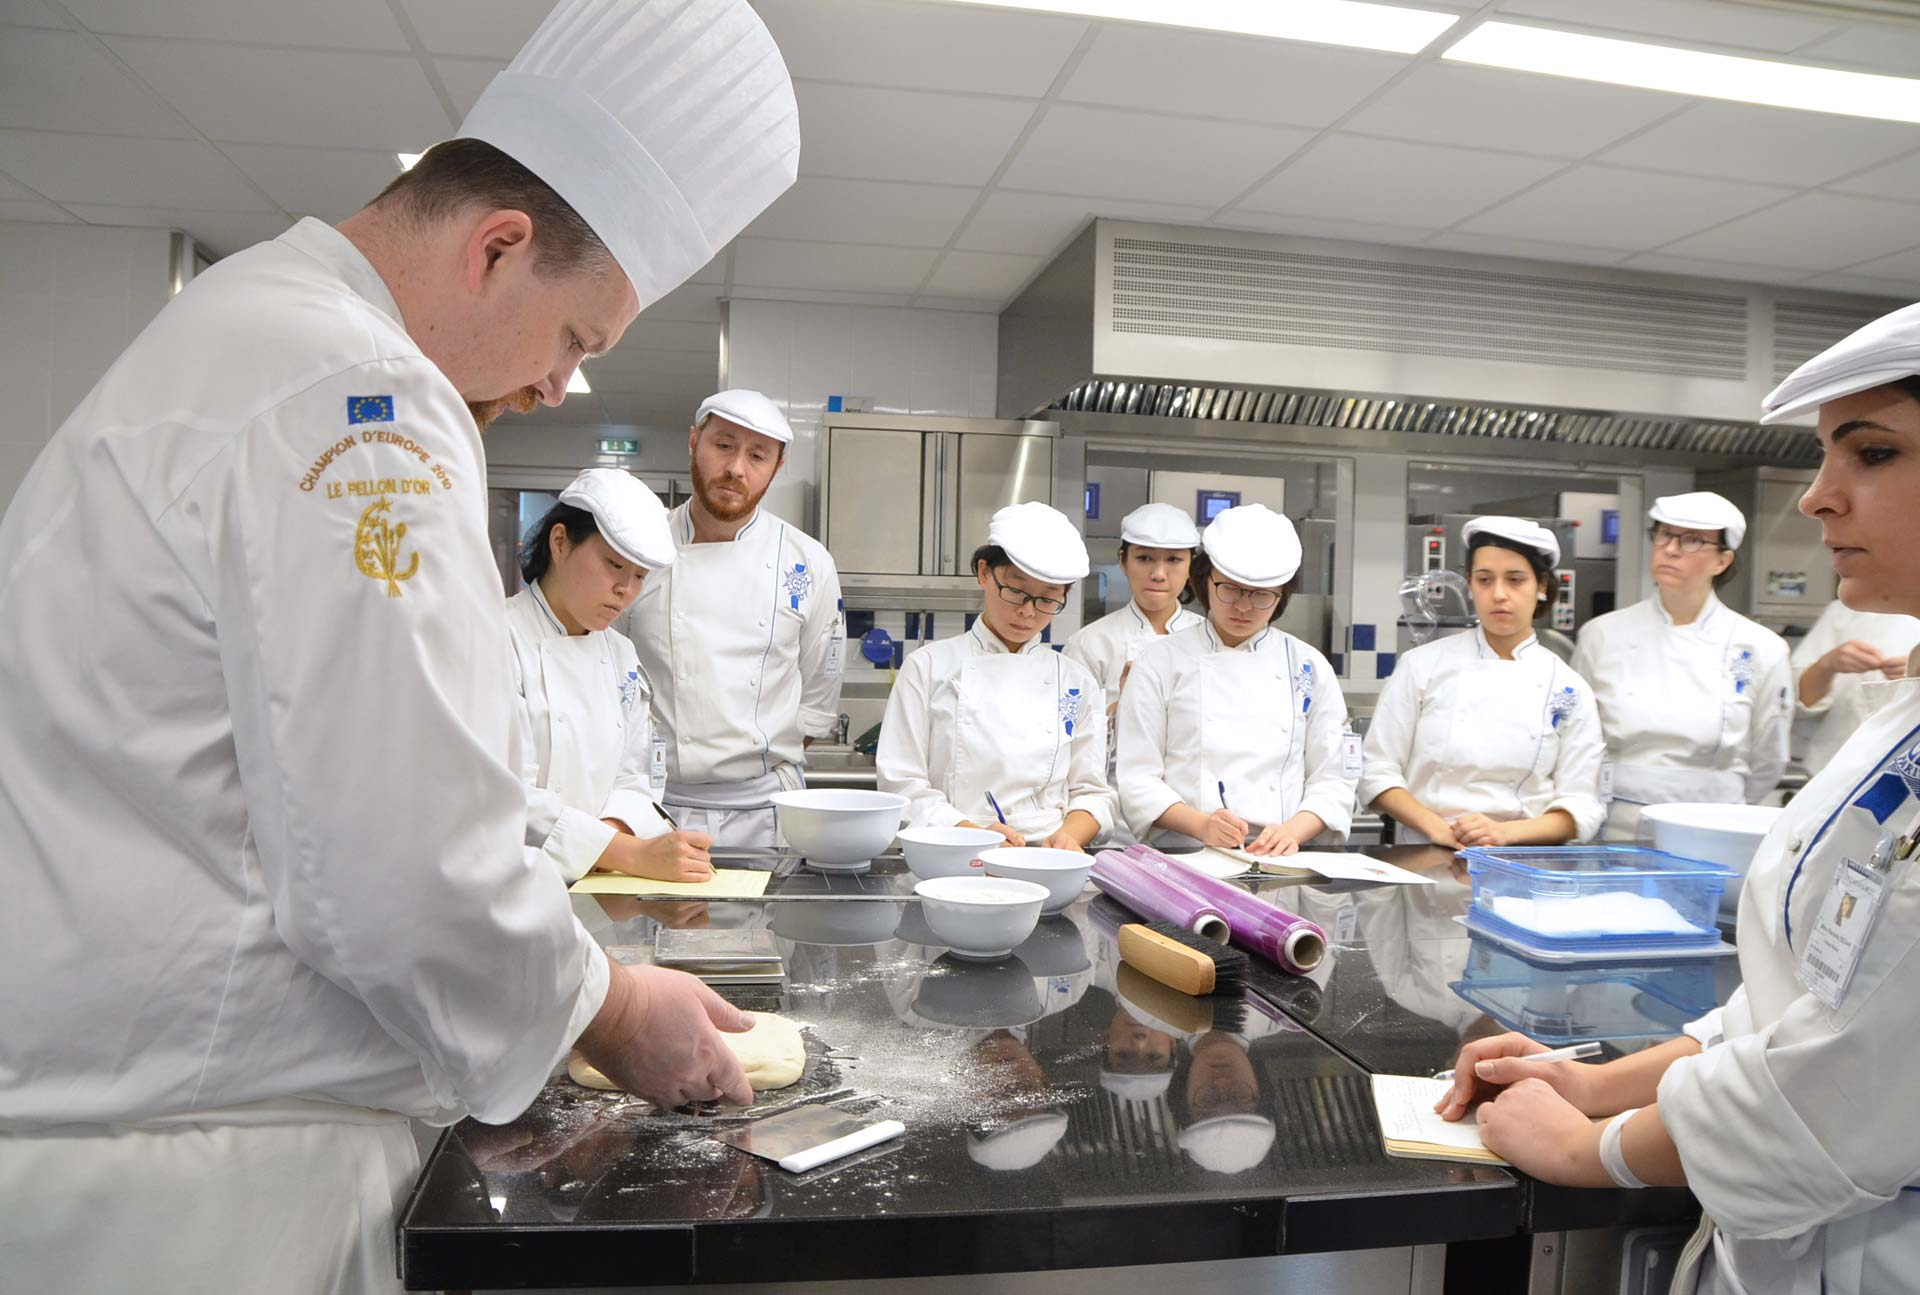 Chef Boudot and the boulangerie students